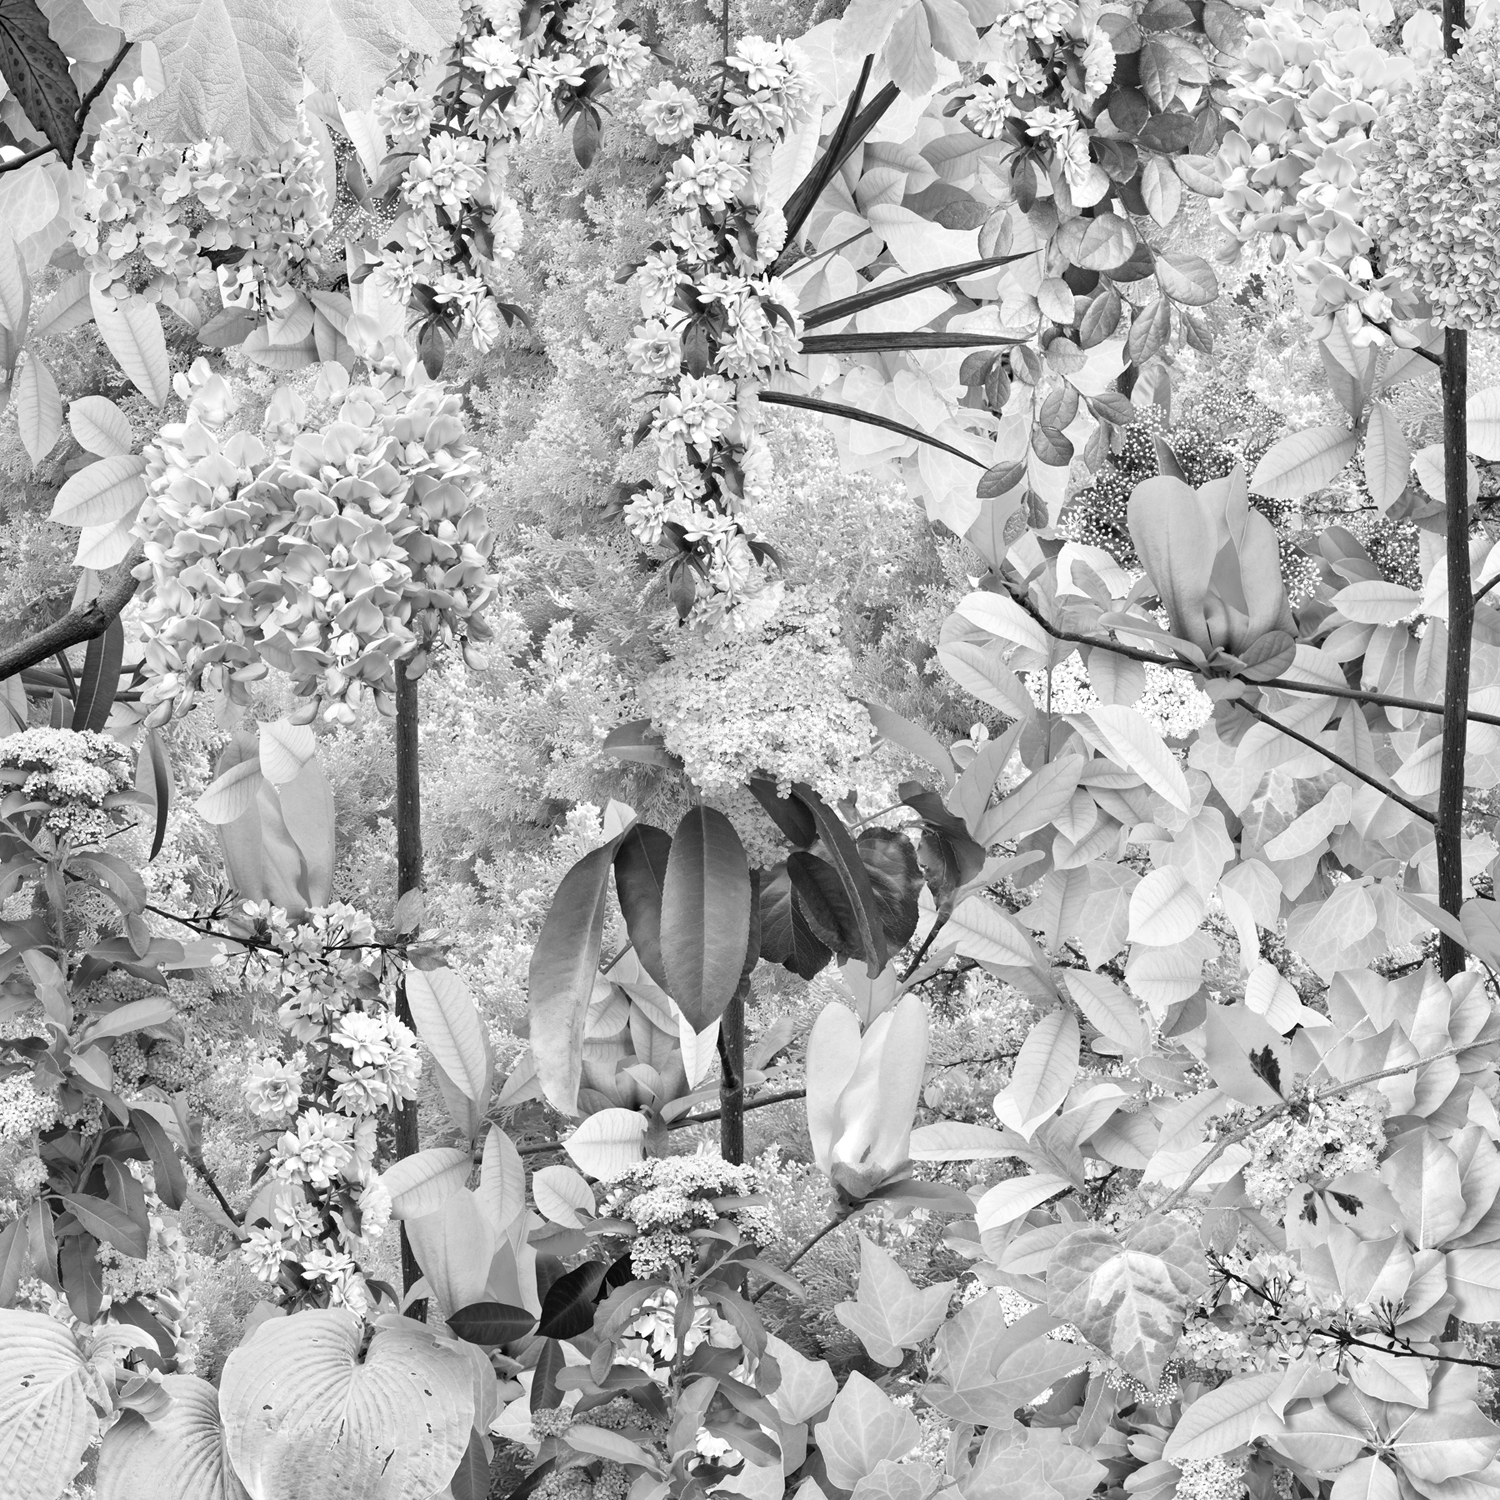 Garden 6, White Flowers , 30 x 30 inches, archival pigment print, 2019